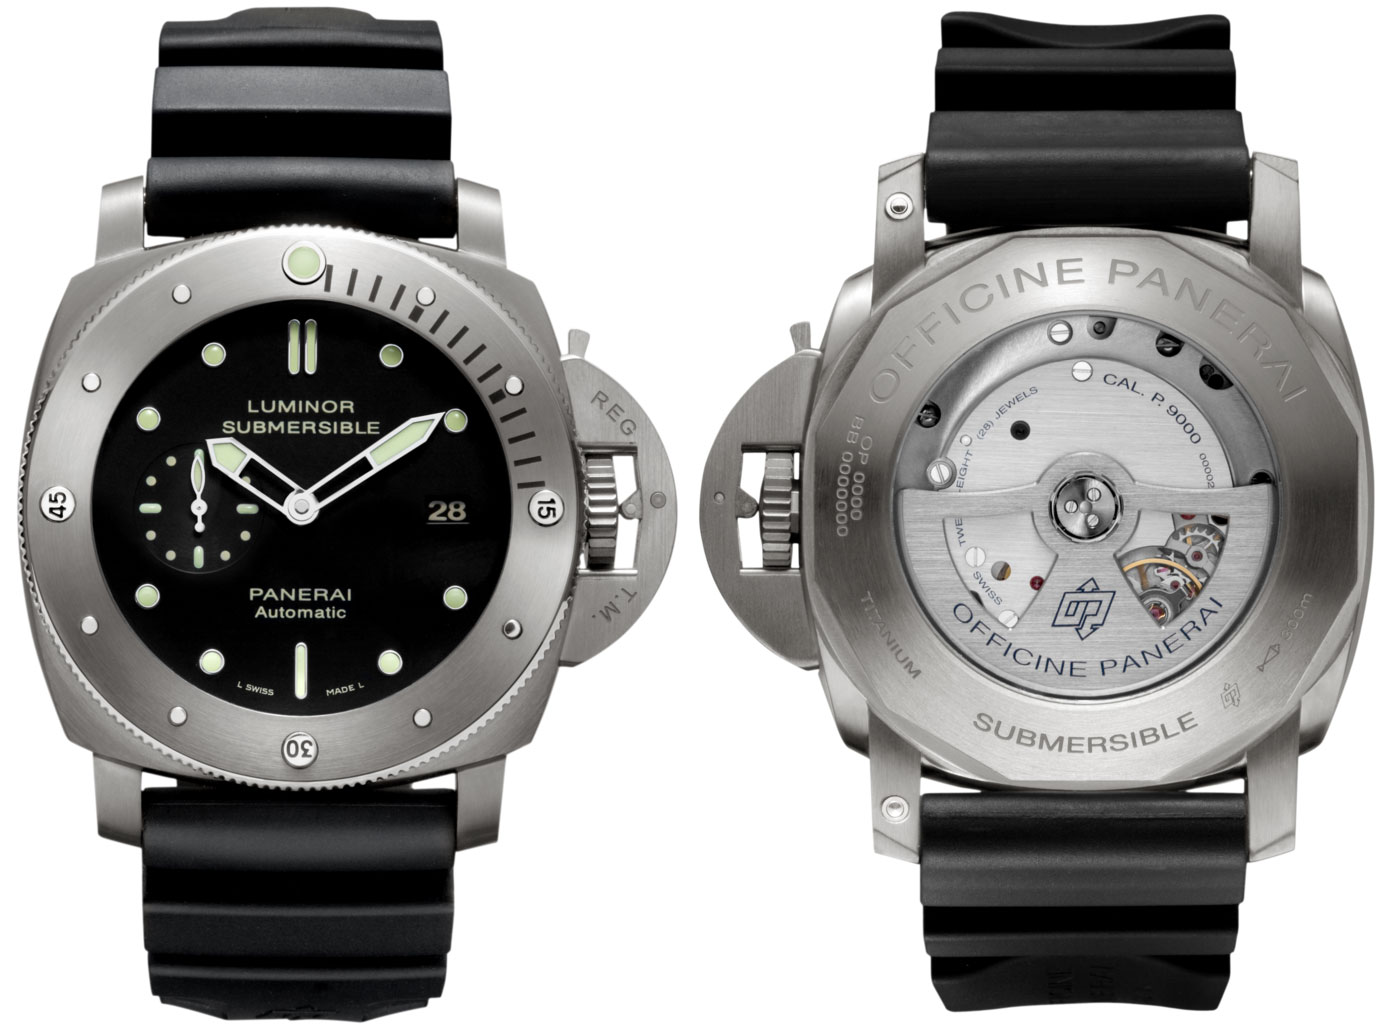 Panerai Luminor 3 days submersible 1950 watch